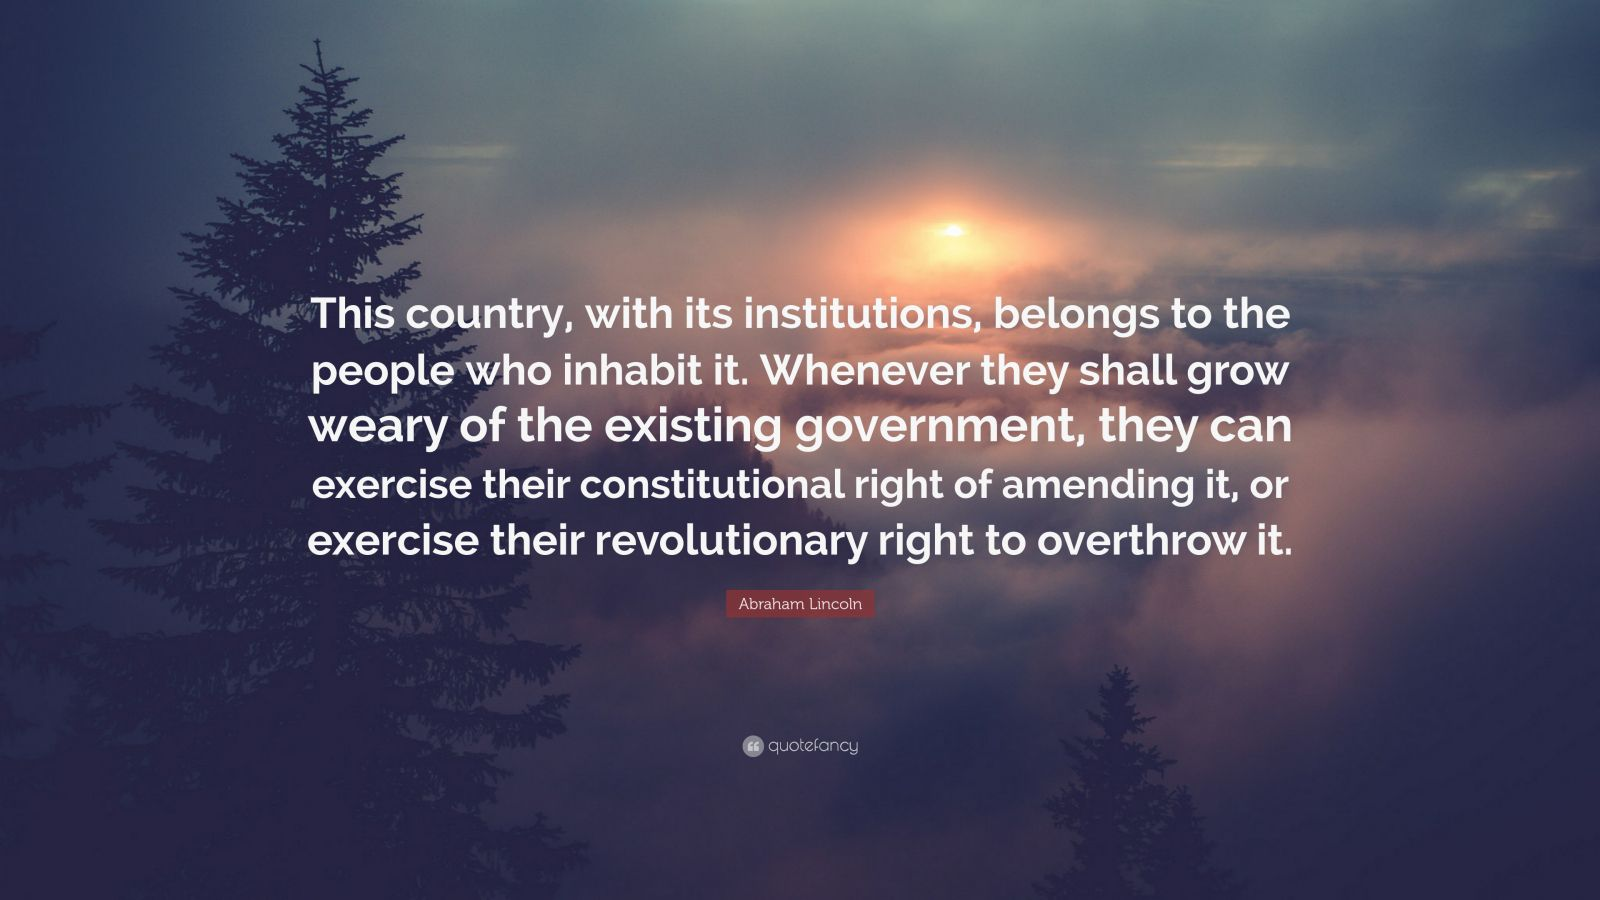 "Abraham Lincoln Quote: ""This country, with its institutions, belongs to the people who inhabit it. Whenever they shall grow weary of the existing government, they can exercise their constitutional right of amending it, or exercise their revolutionary right to overthrow it."""